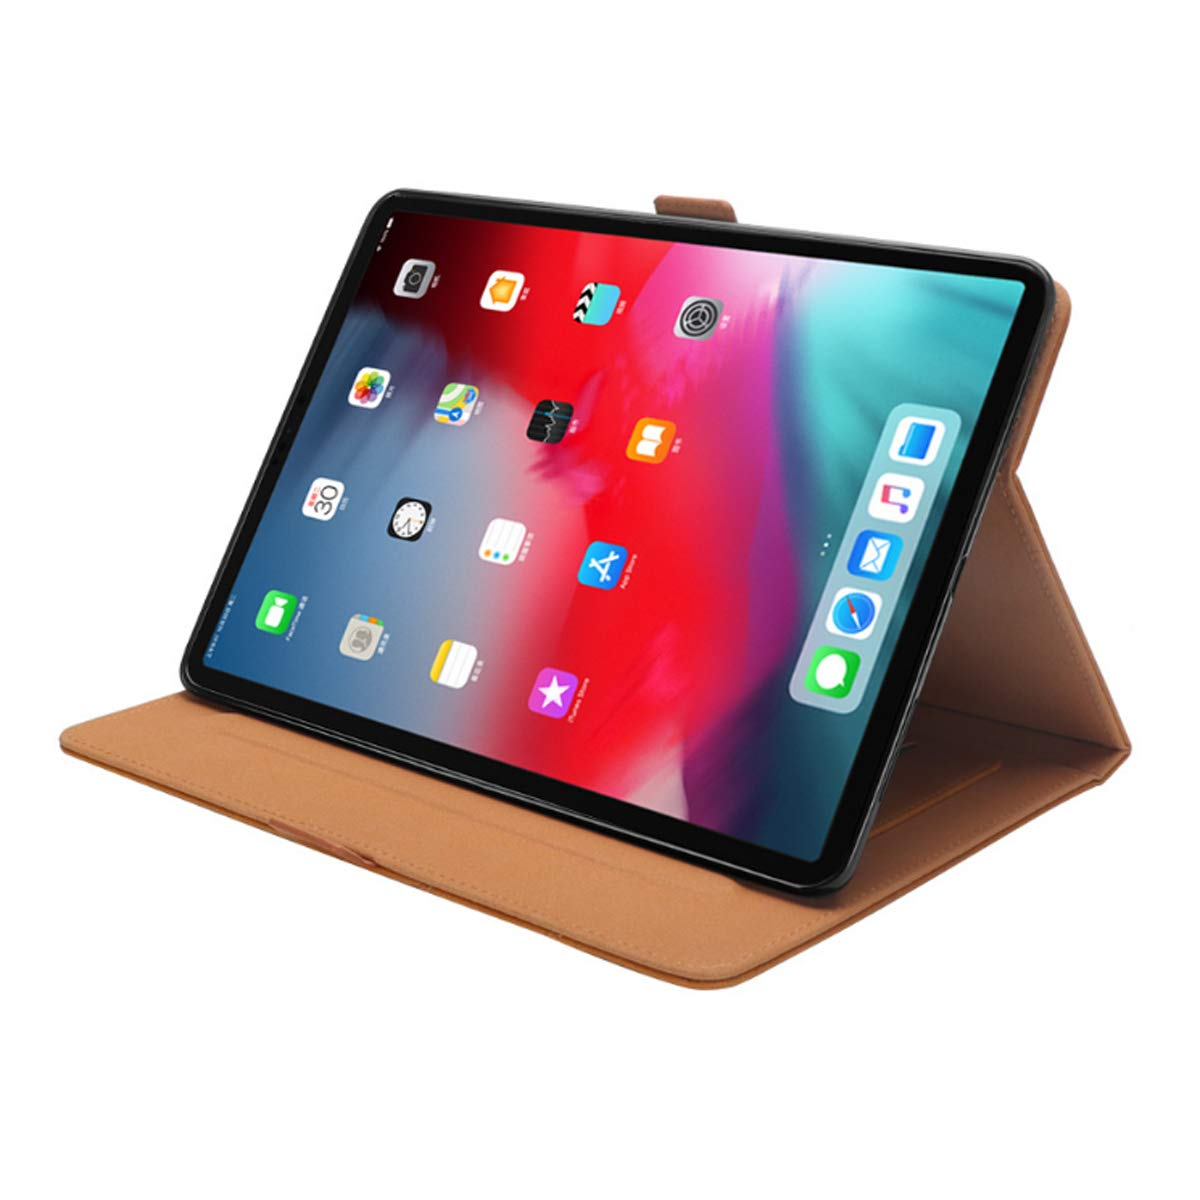 iPad 6th Generation Cases with Pencil Holder, Premium PU Leather Folio Case Soft TPU Back Protective Stand Cover with Card Slots for iPad 9.7 Inch 2018 (6th Gen) / iPad 9.7'' 2017 (5th Gen) –Khaki by KATEGY (Image #7)